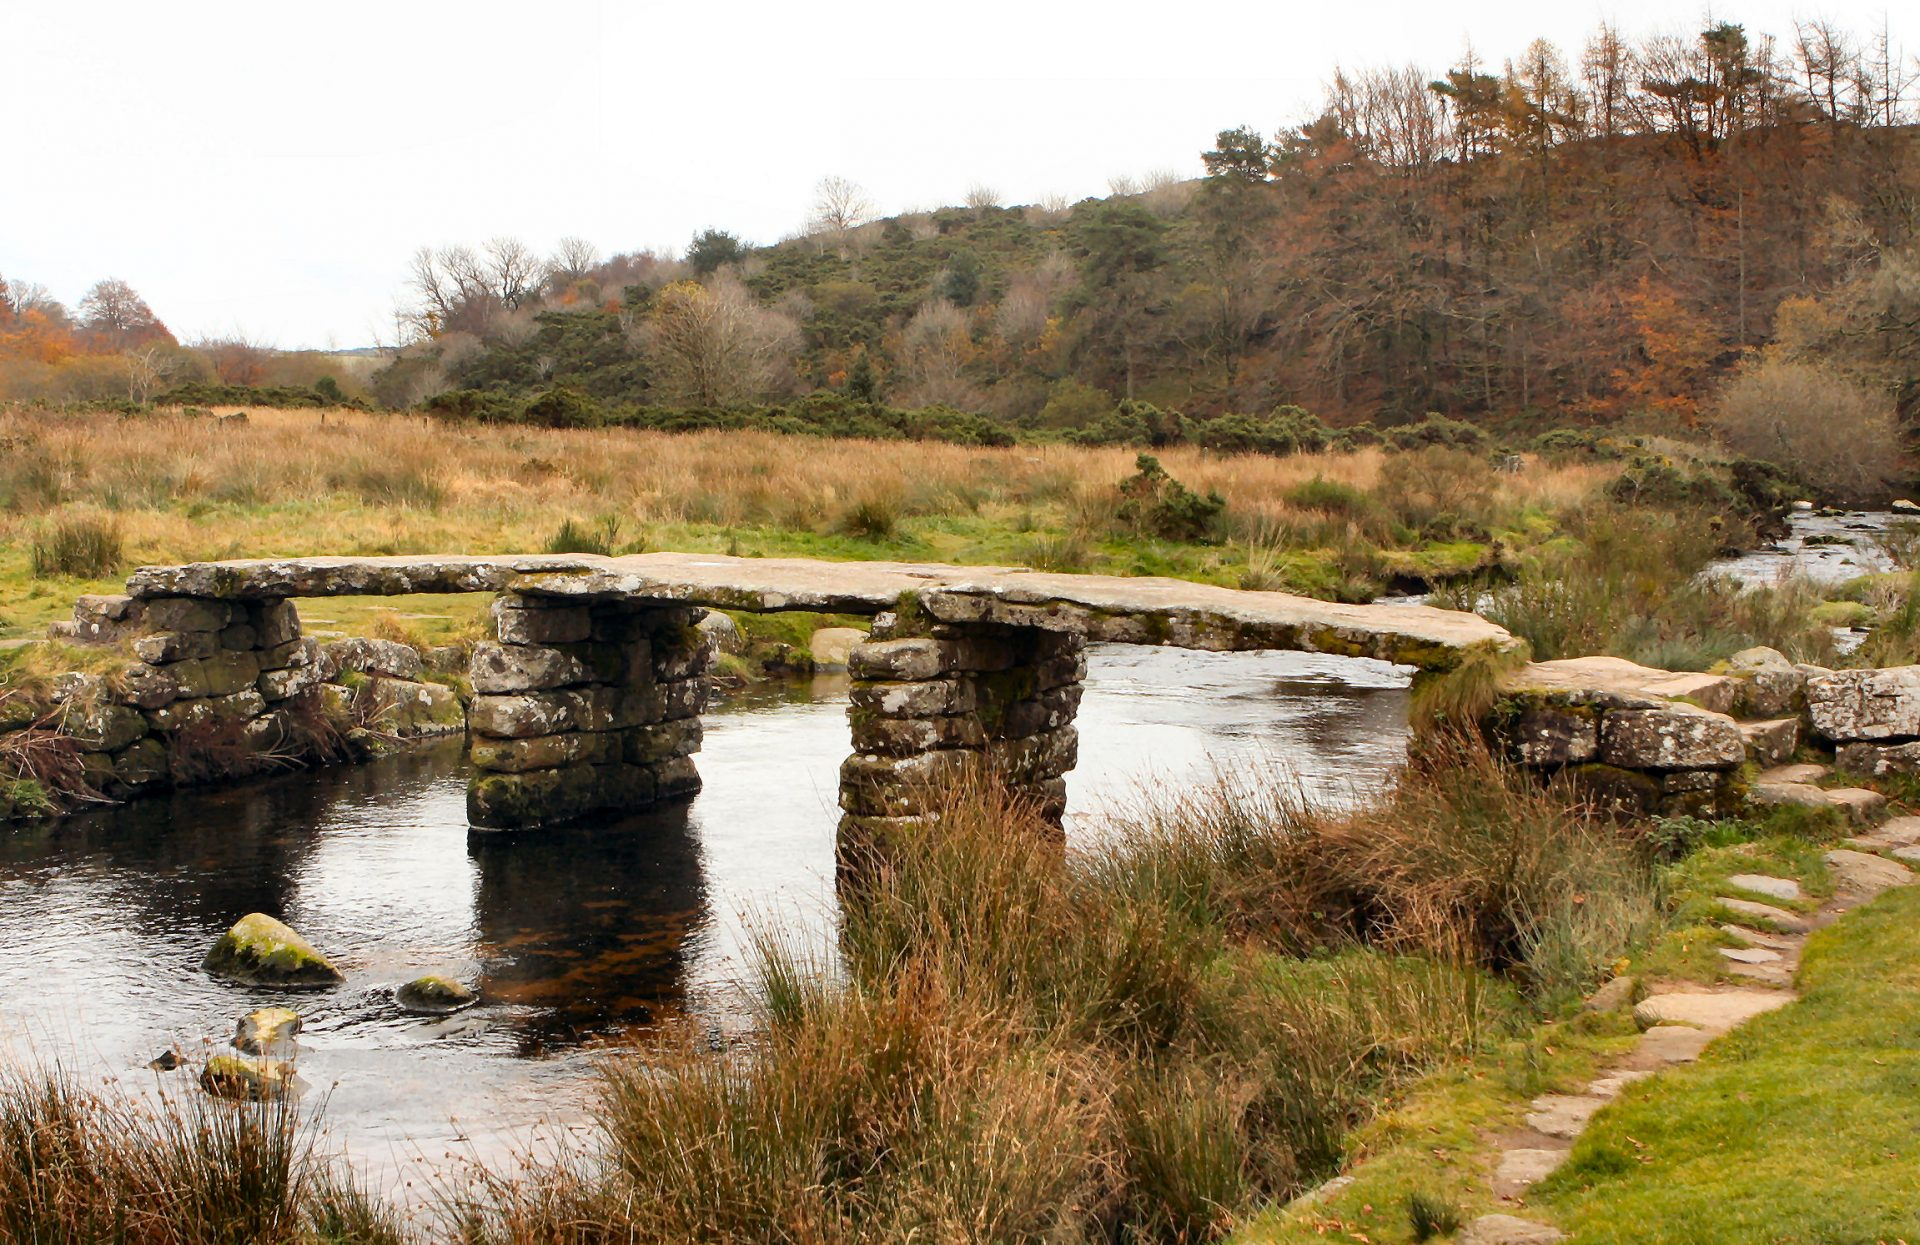 Postbridge. The ancient clapper bridge built of granite. Rarely without a tourist on top in Summer.